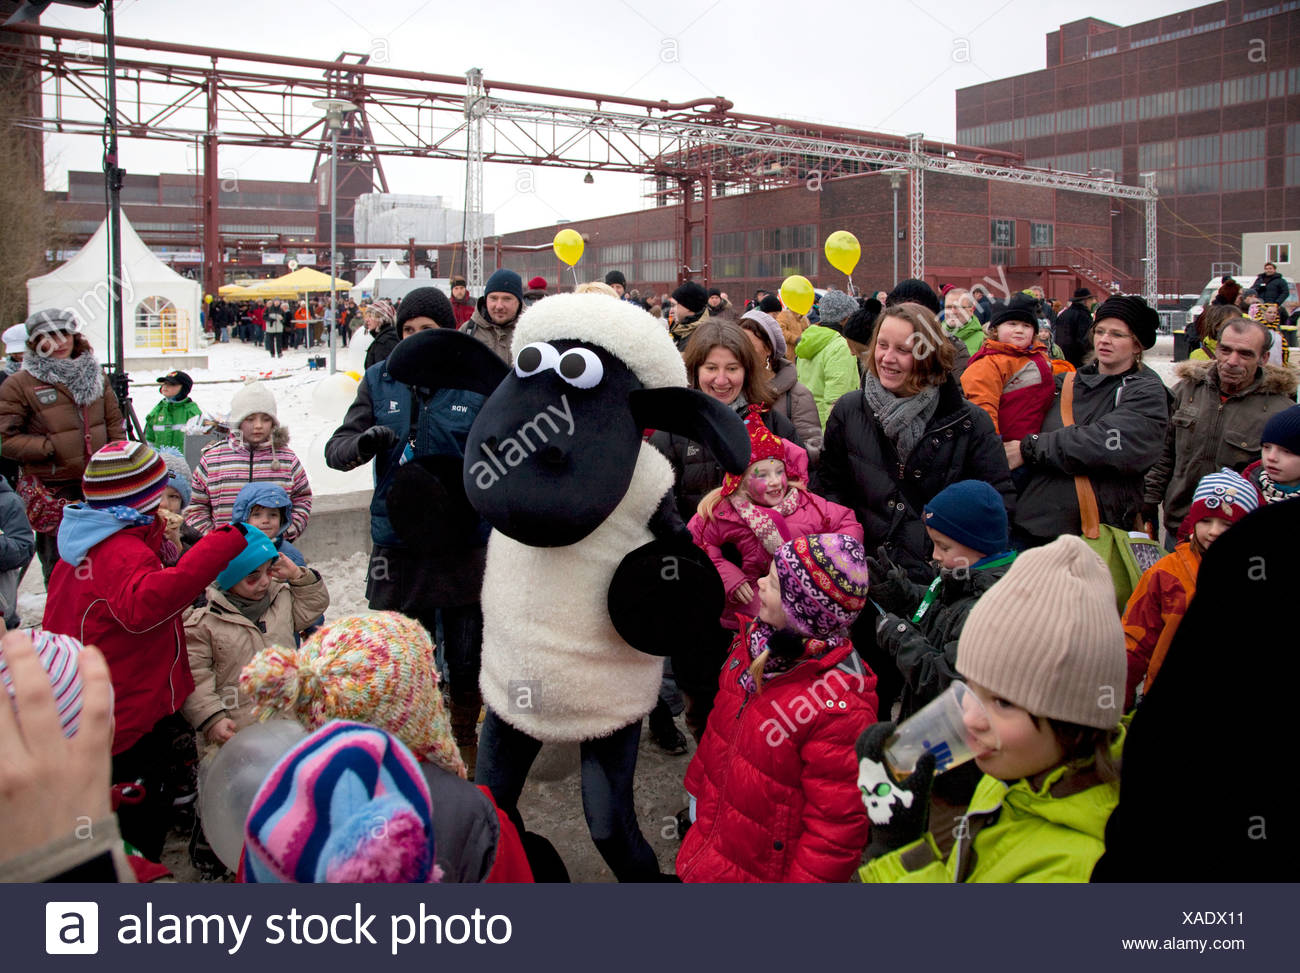 Essen, Germany, children celebrate with Shaun the Sheep on the Cultural Festival Ruhr 2010 - Stock Image